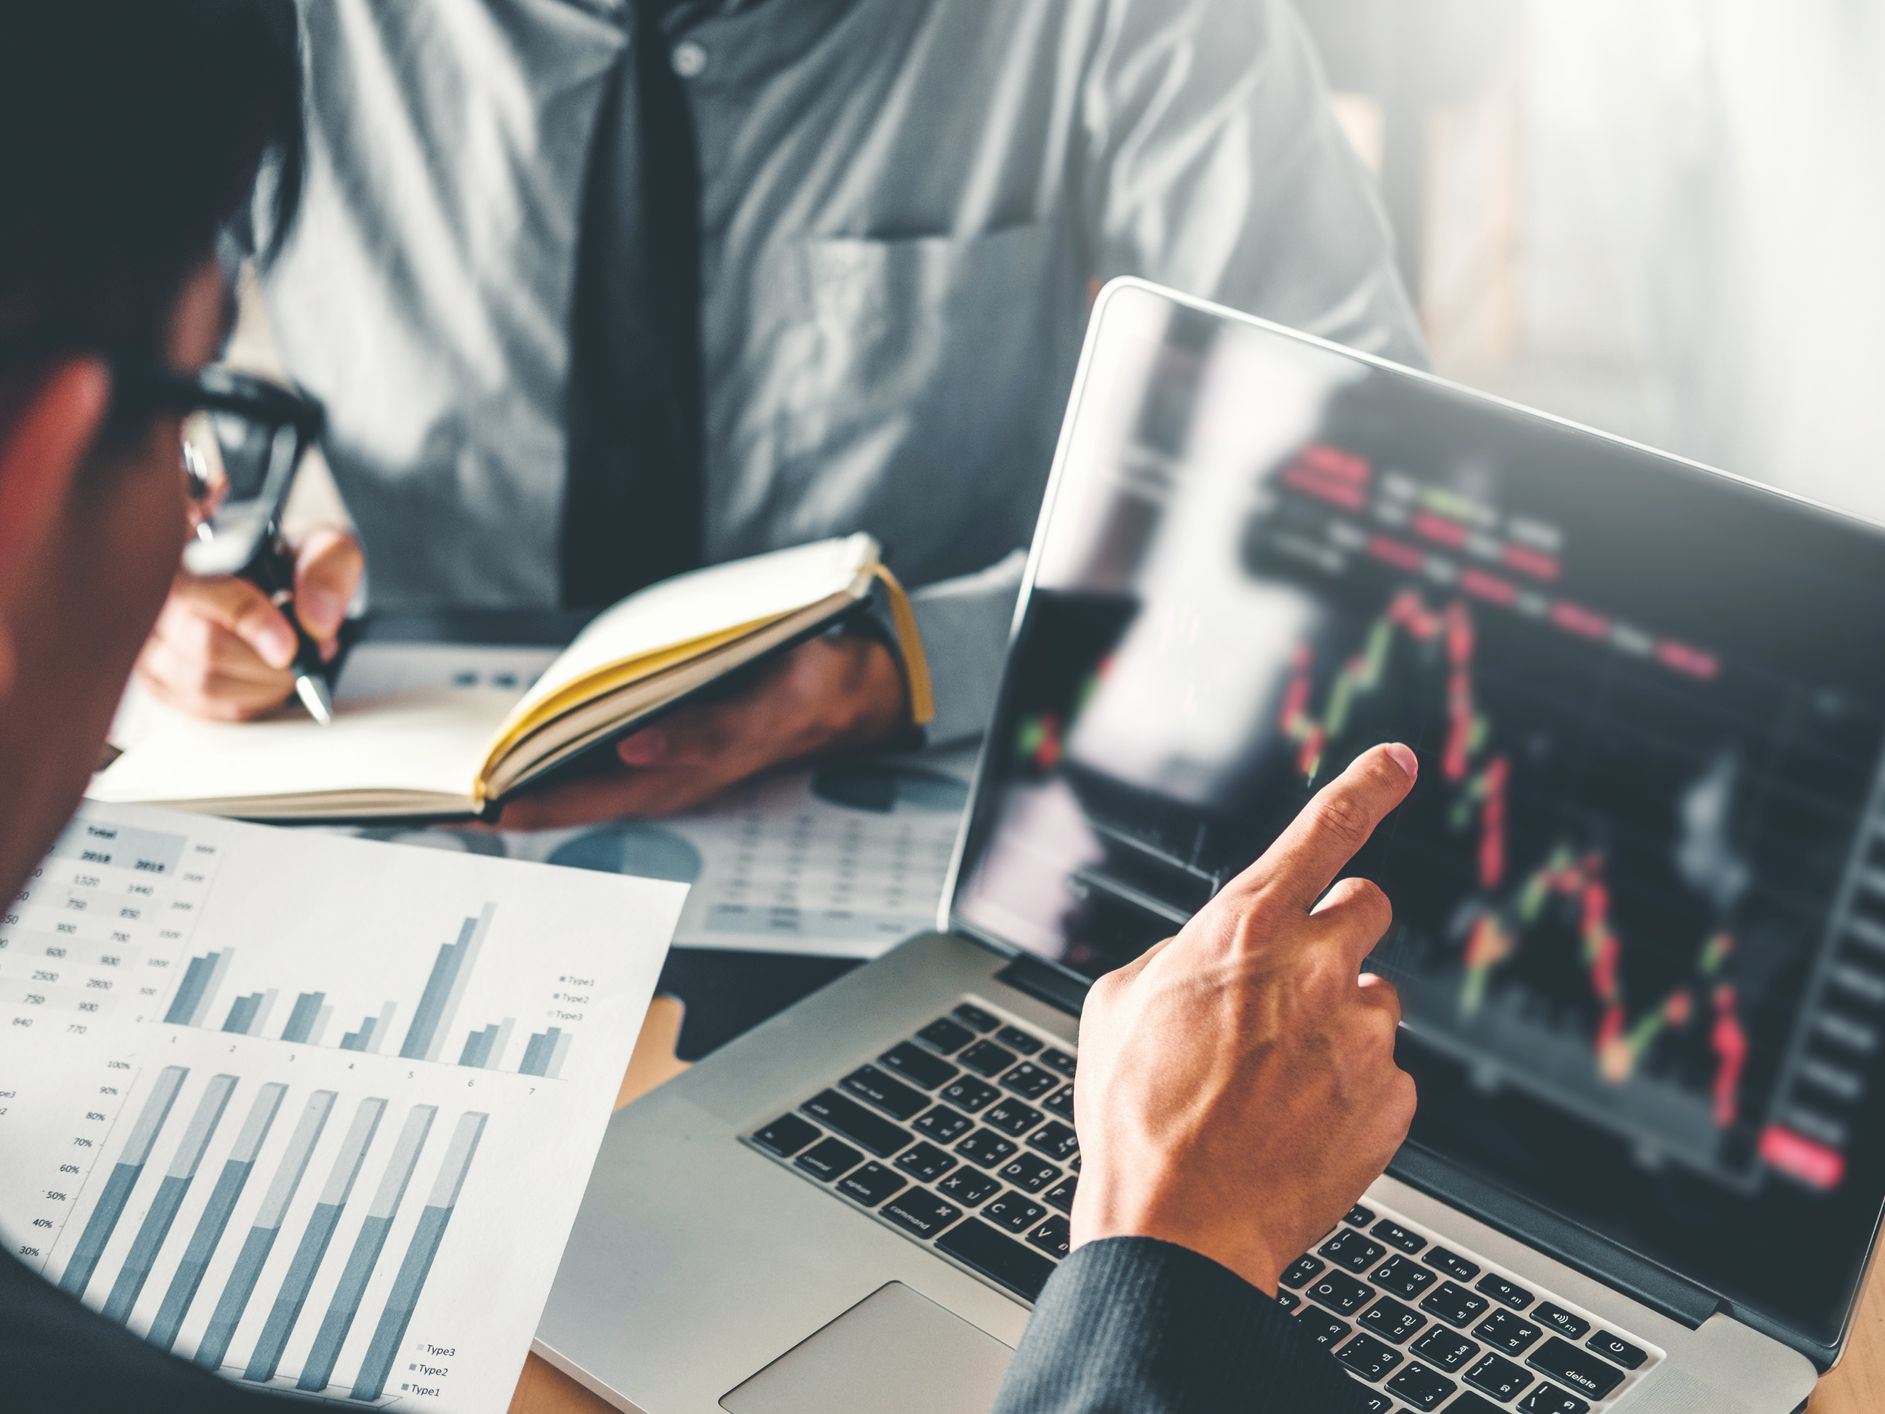 Get Help Investing With the Best Online Brokers